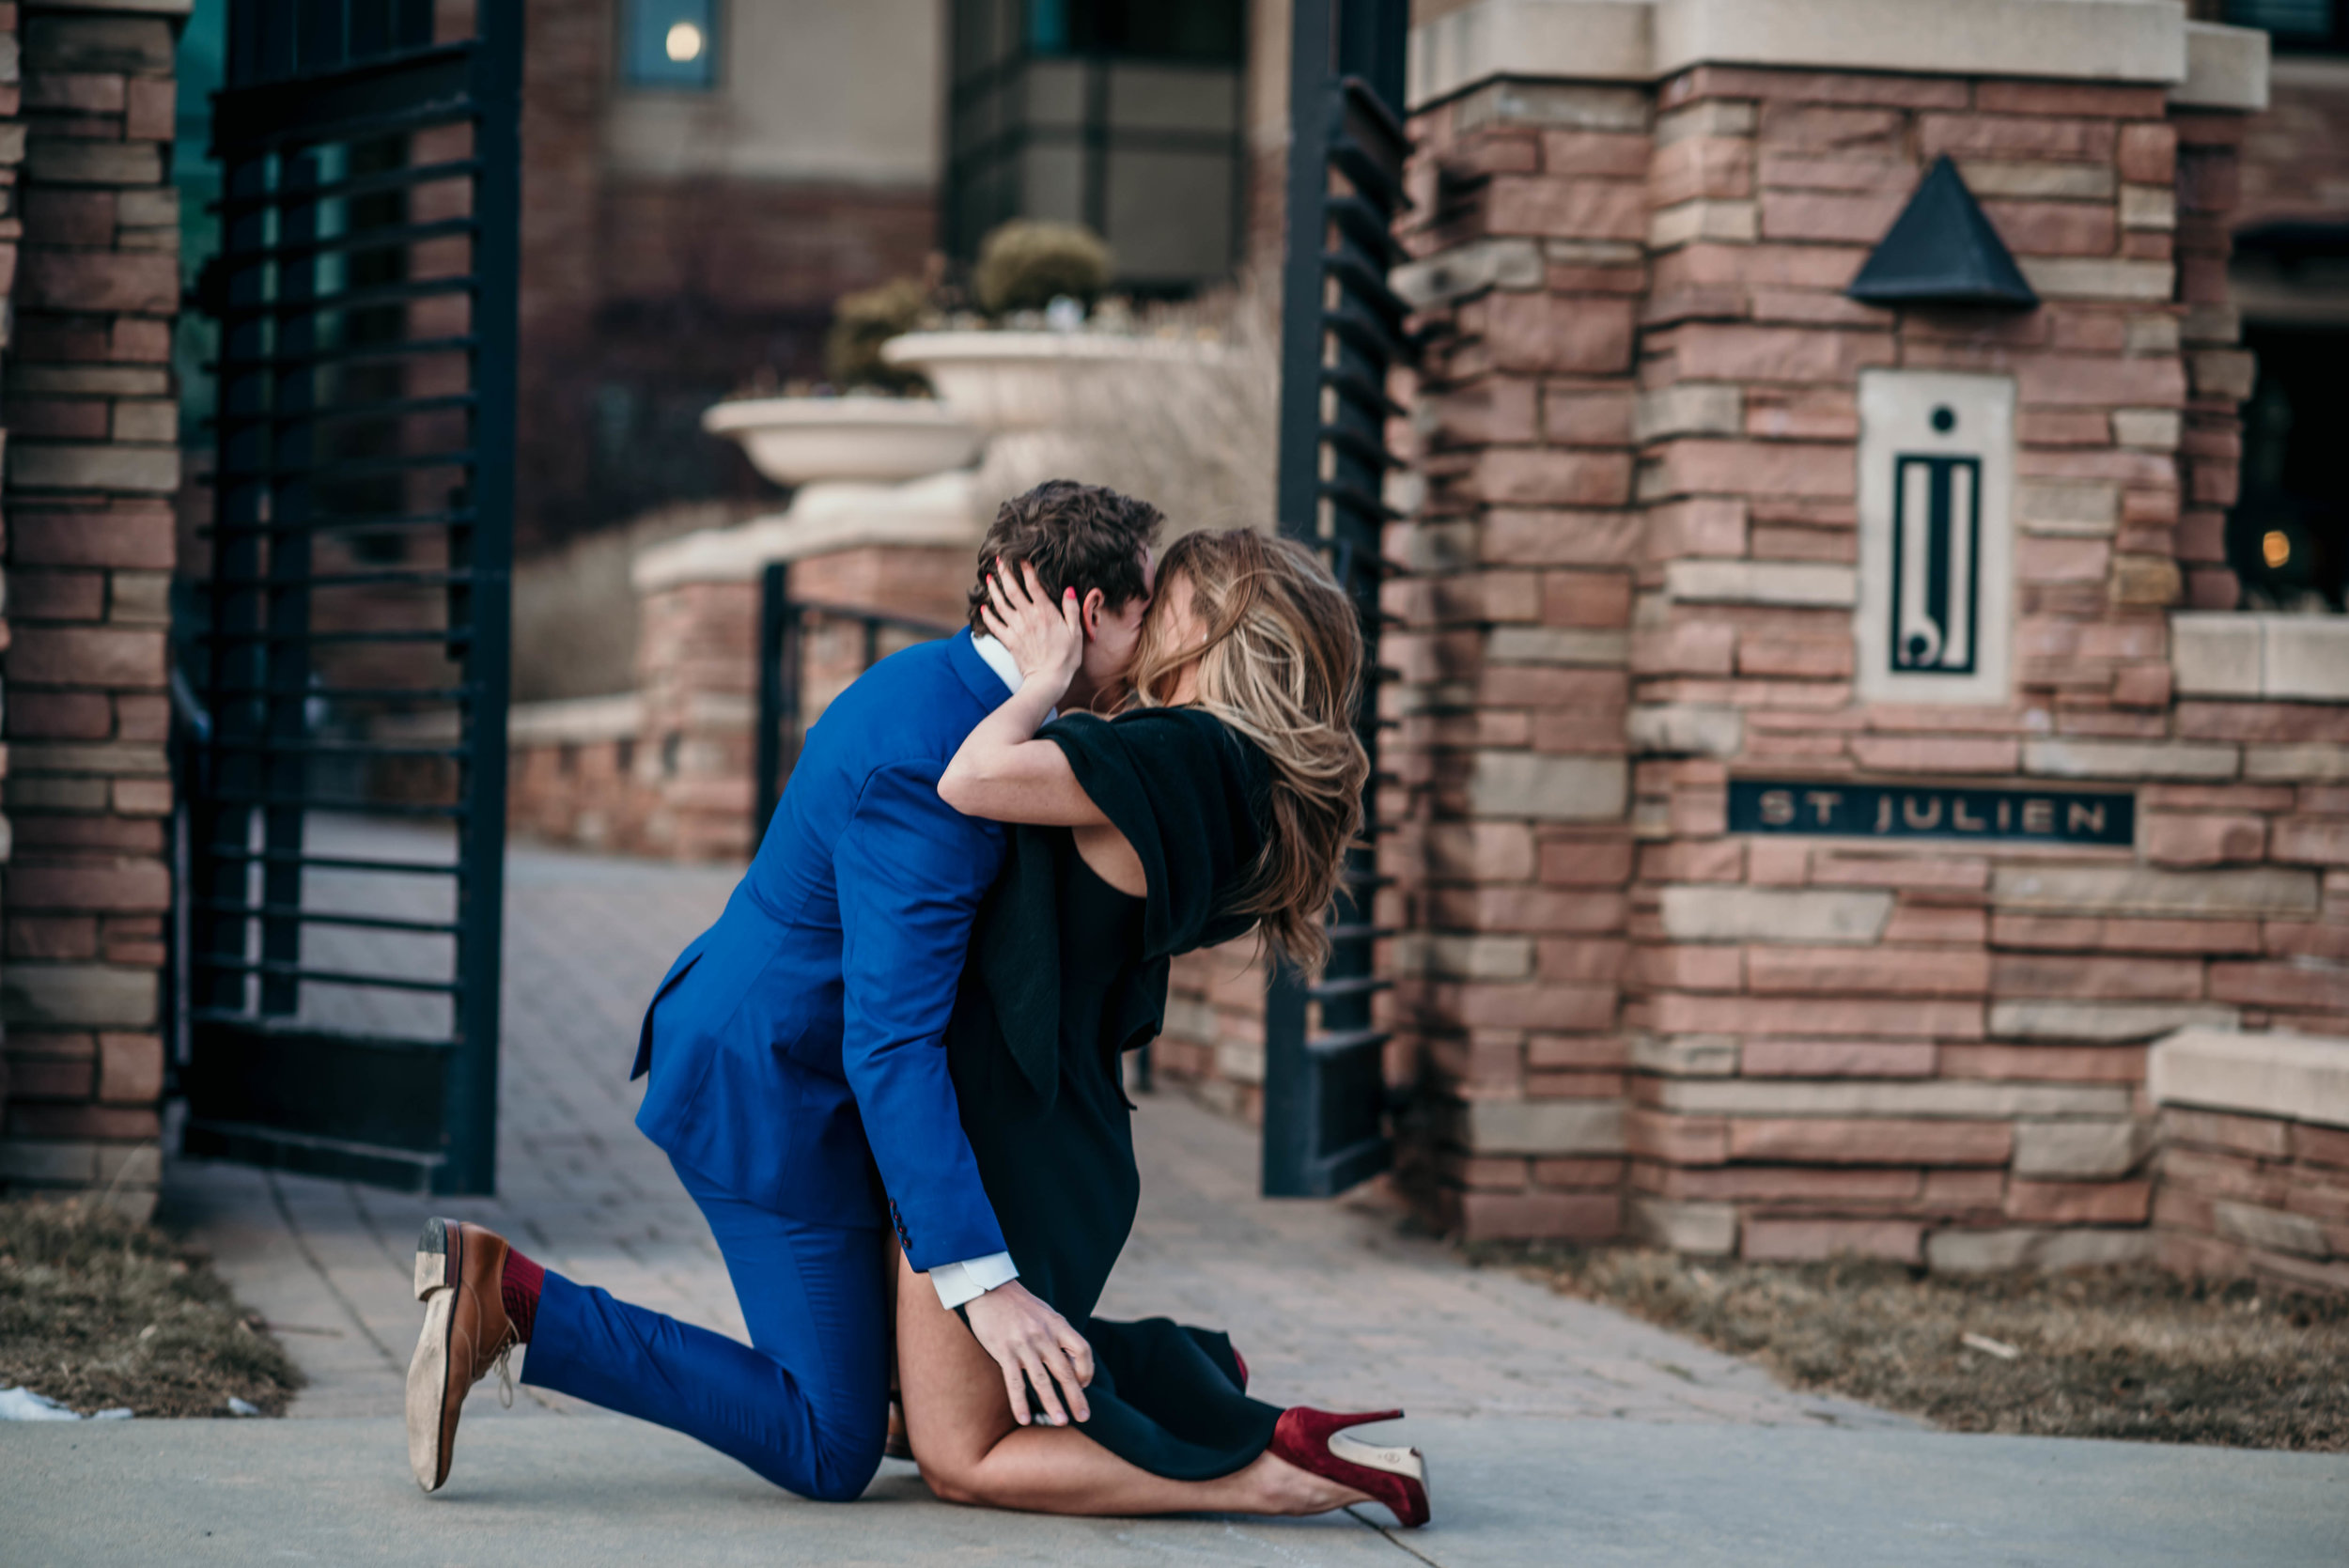 colorado_proposal_photographer_0325.jpg